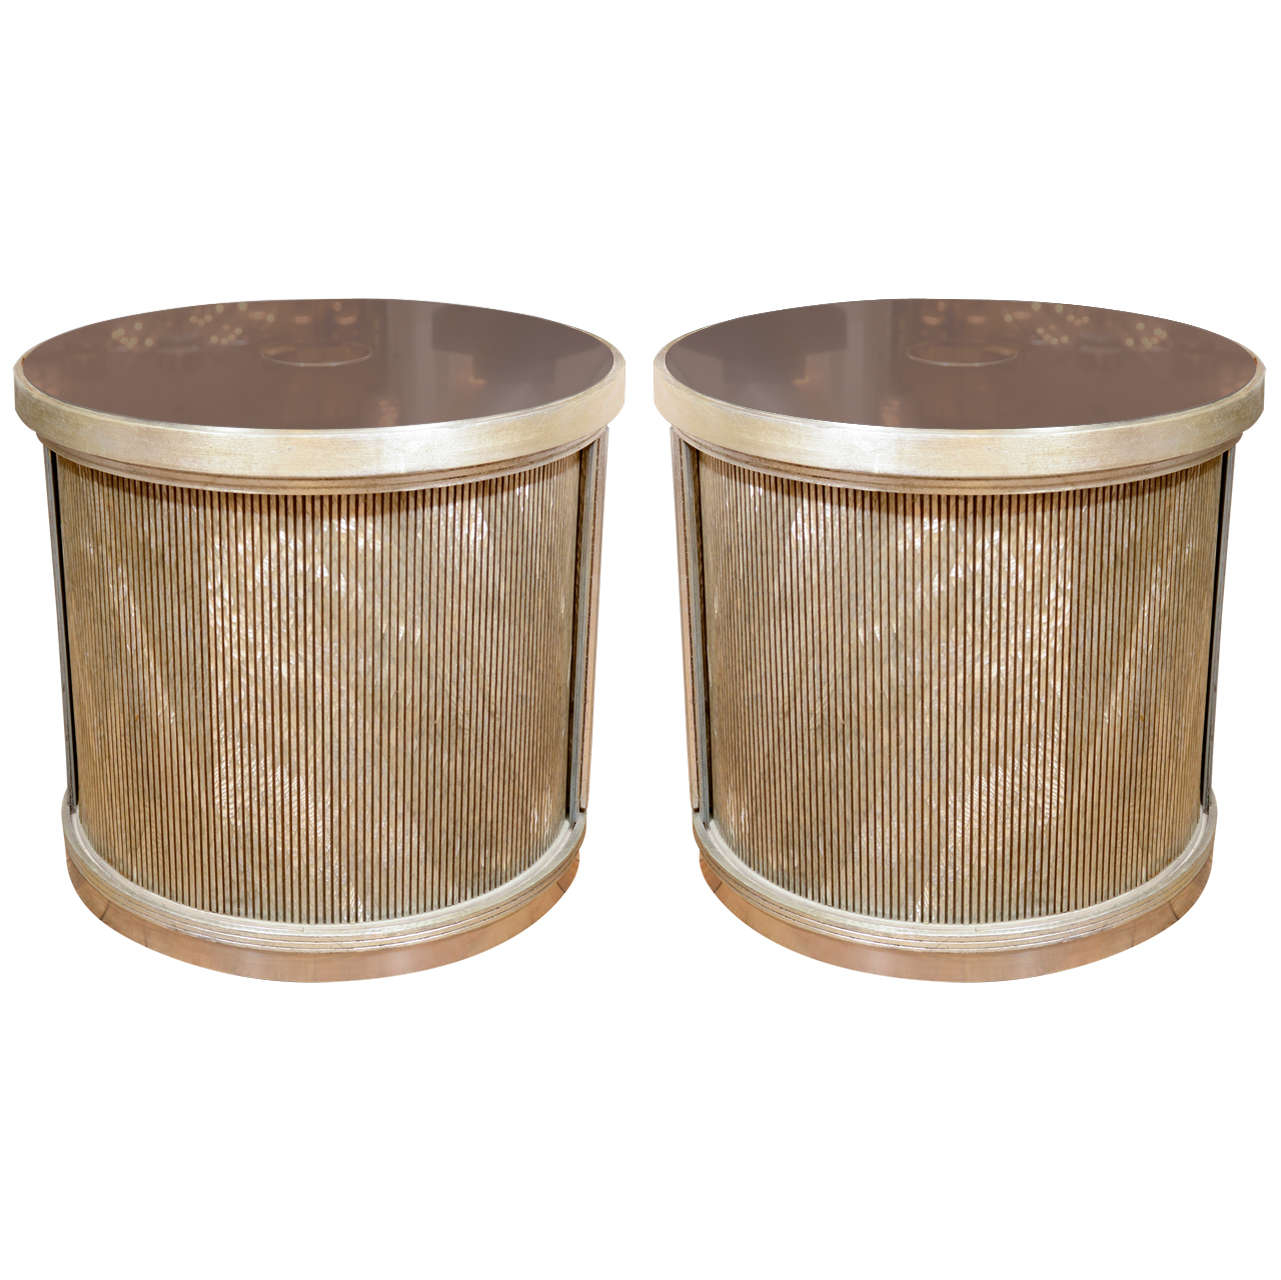 Pair Of Drum Form Side Tables With Sliding Door And Faux Finish Details